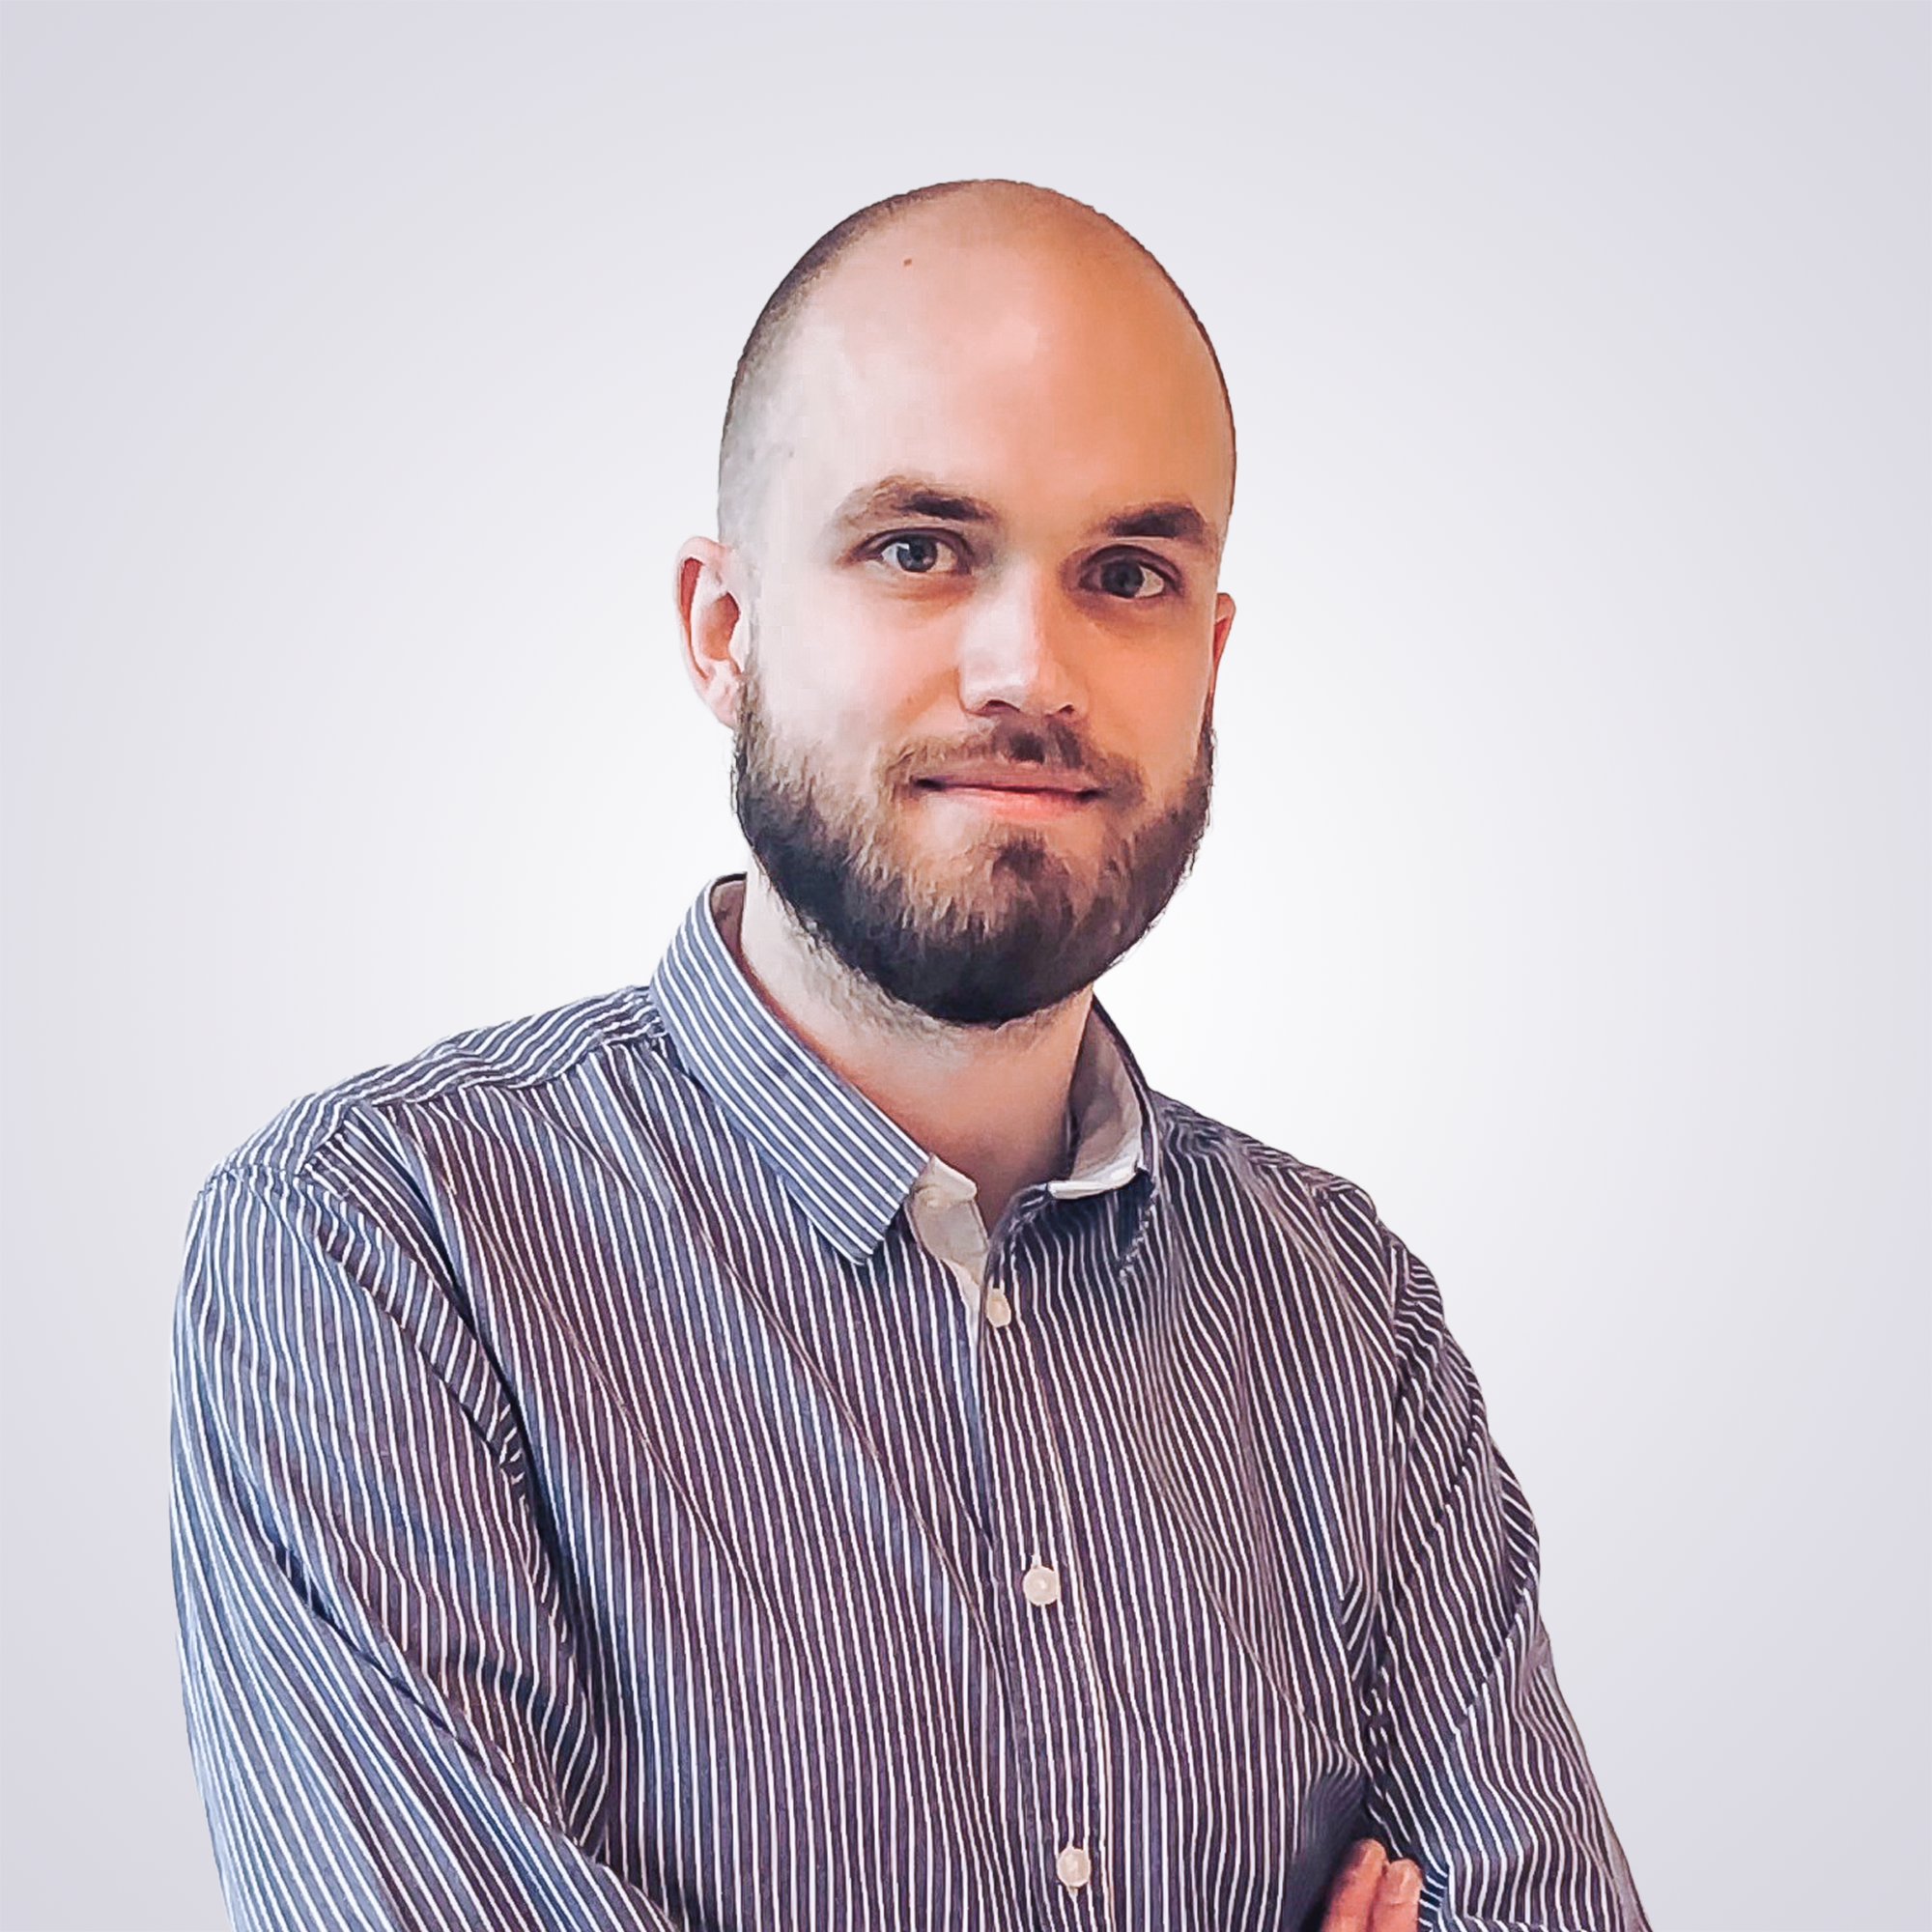 Get to know our IP specialist: 4 questions to our Patent Attorney, Sjors de Koning